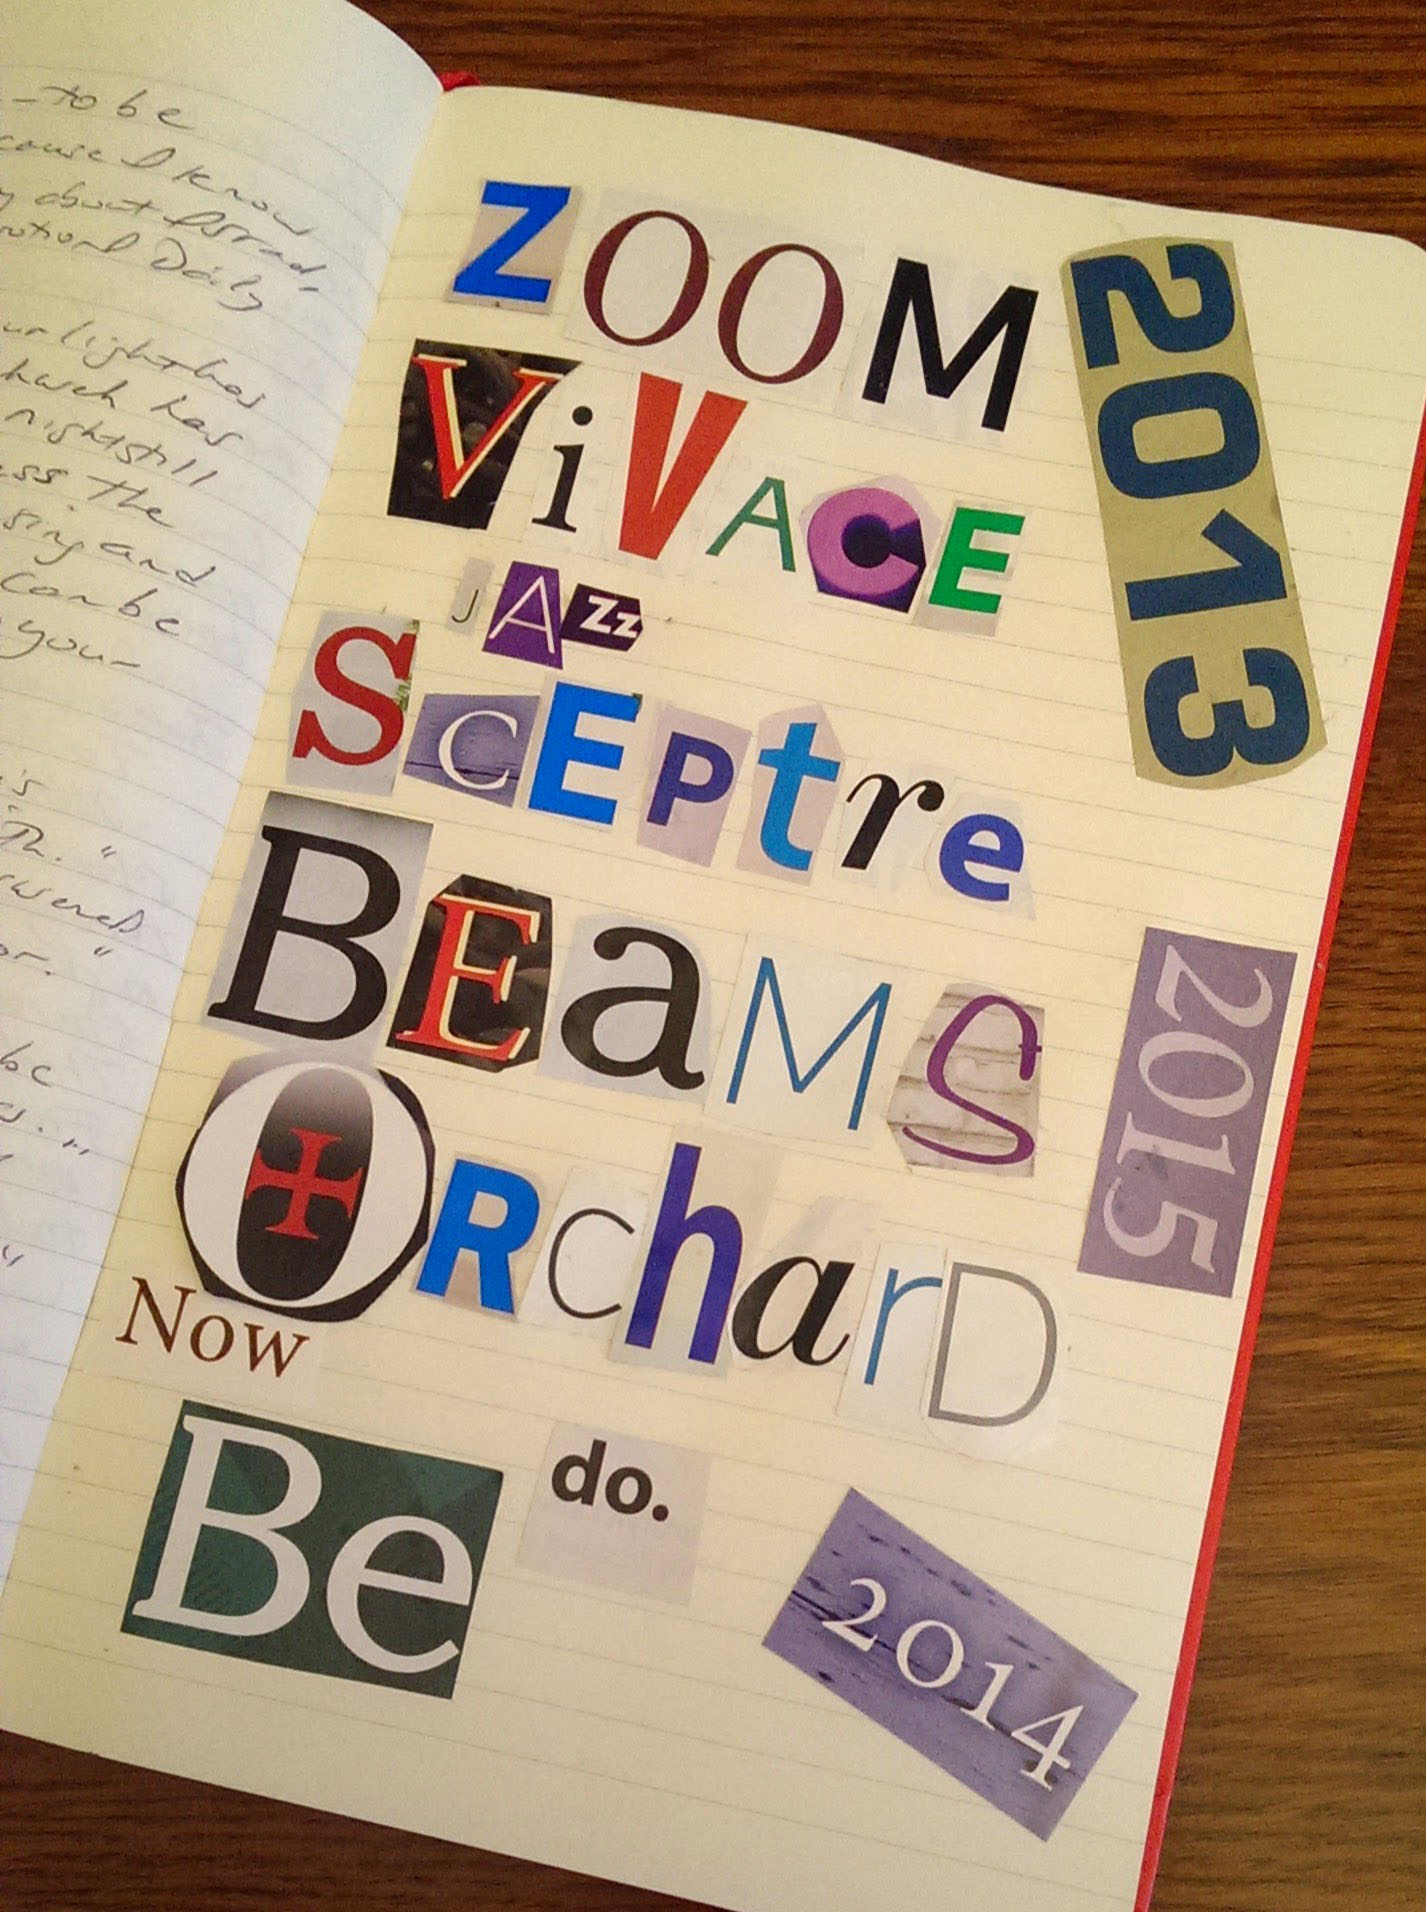 my #3words 2015 sceptre, beams, orchard and 3 words for past years are now, be, do and zoom vivace jazz, words in moleskine